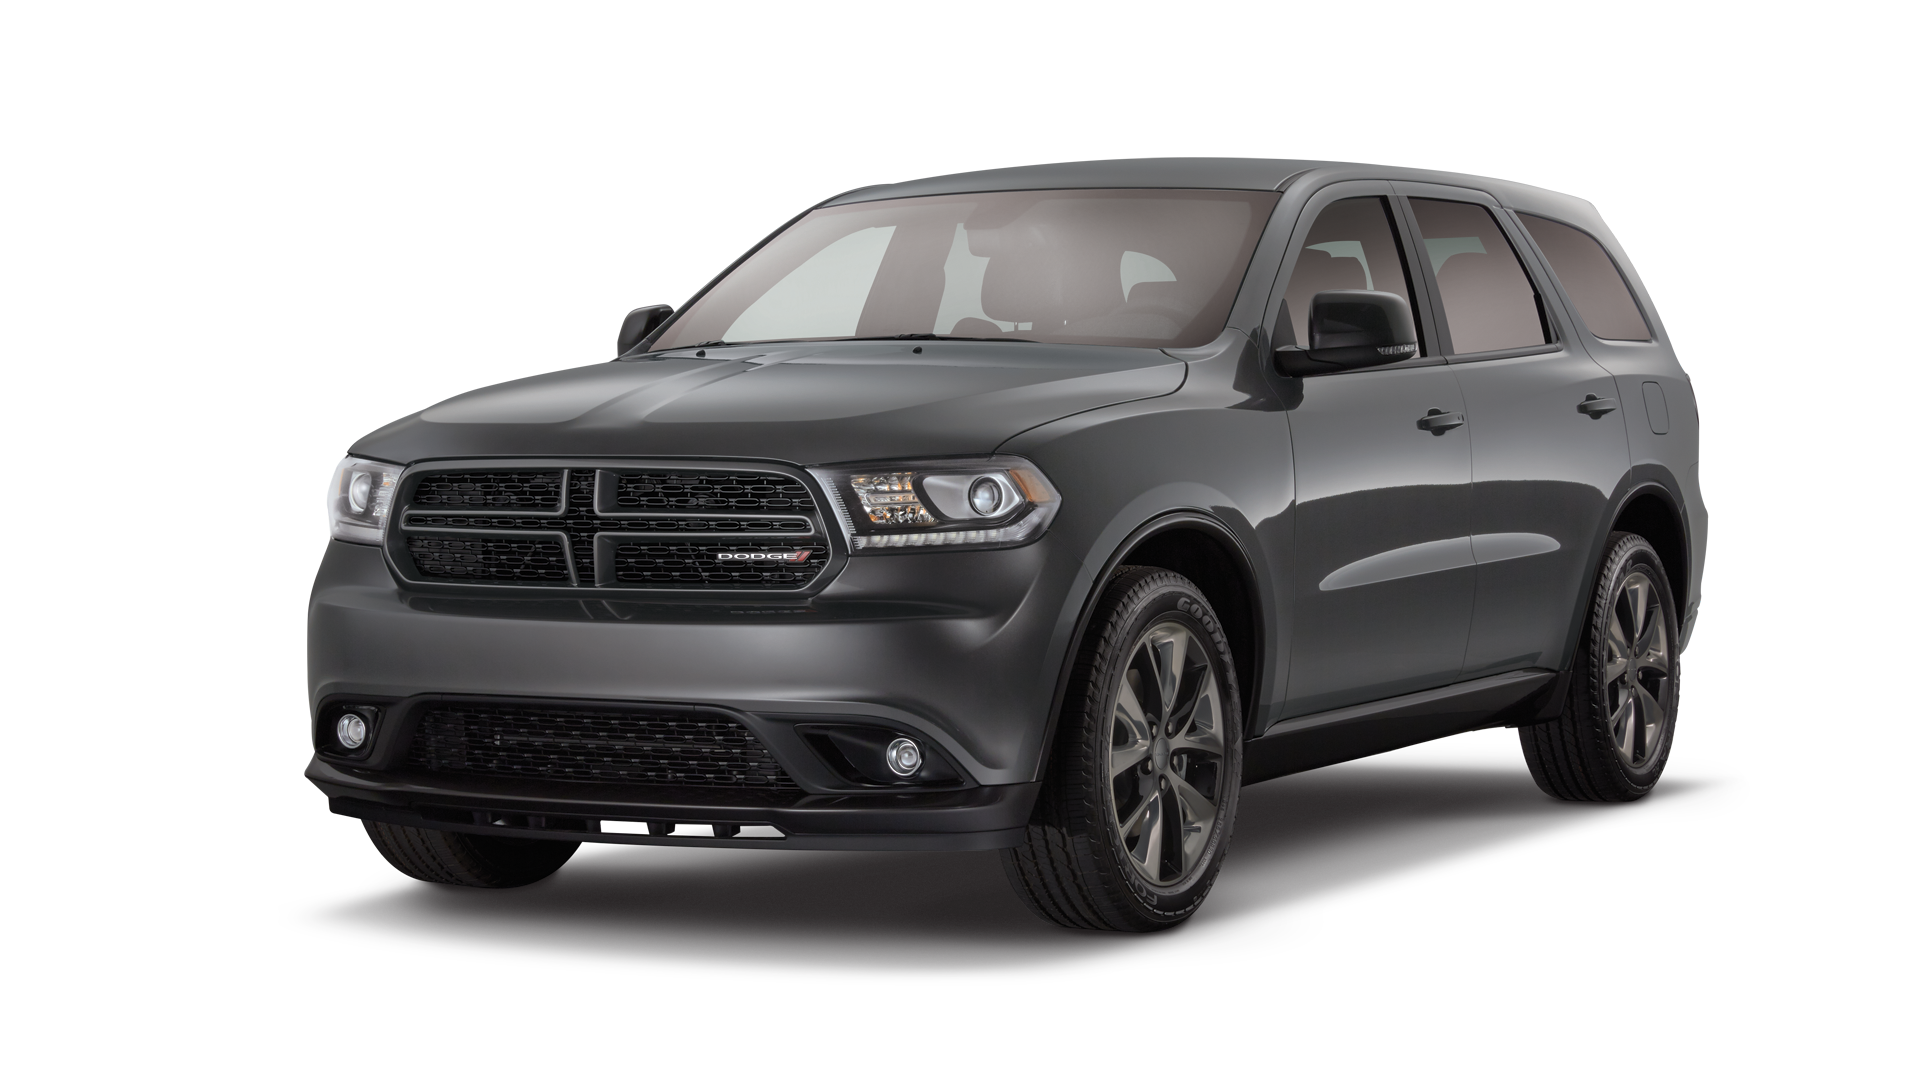 New  Used Dodge Dealer Serving San Antonio  Cars Trucks  SUVs